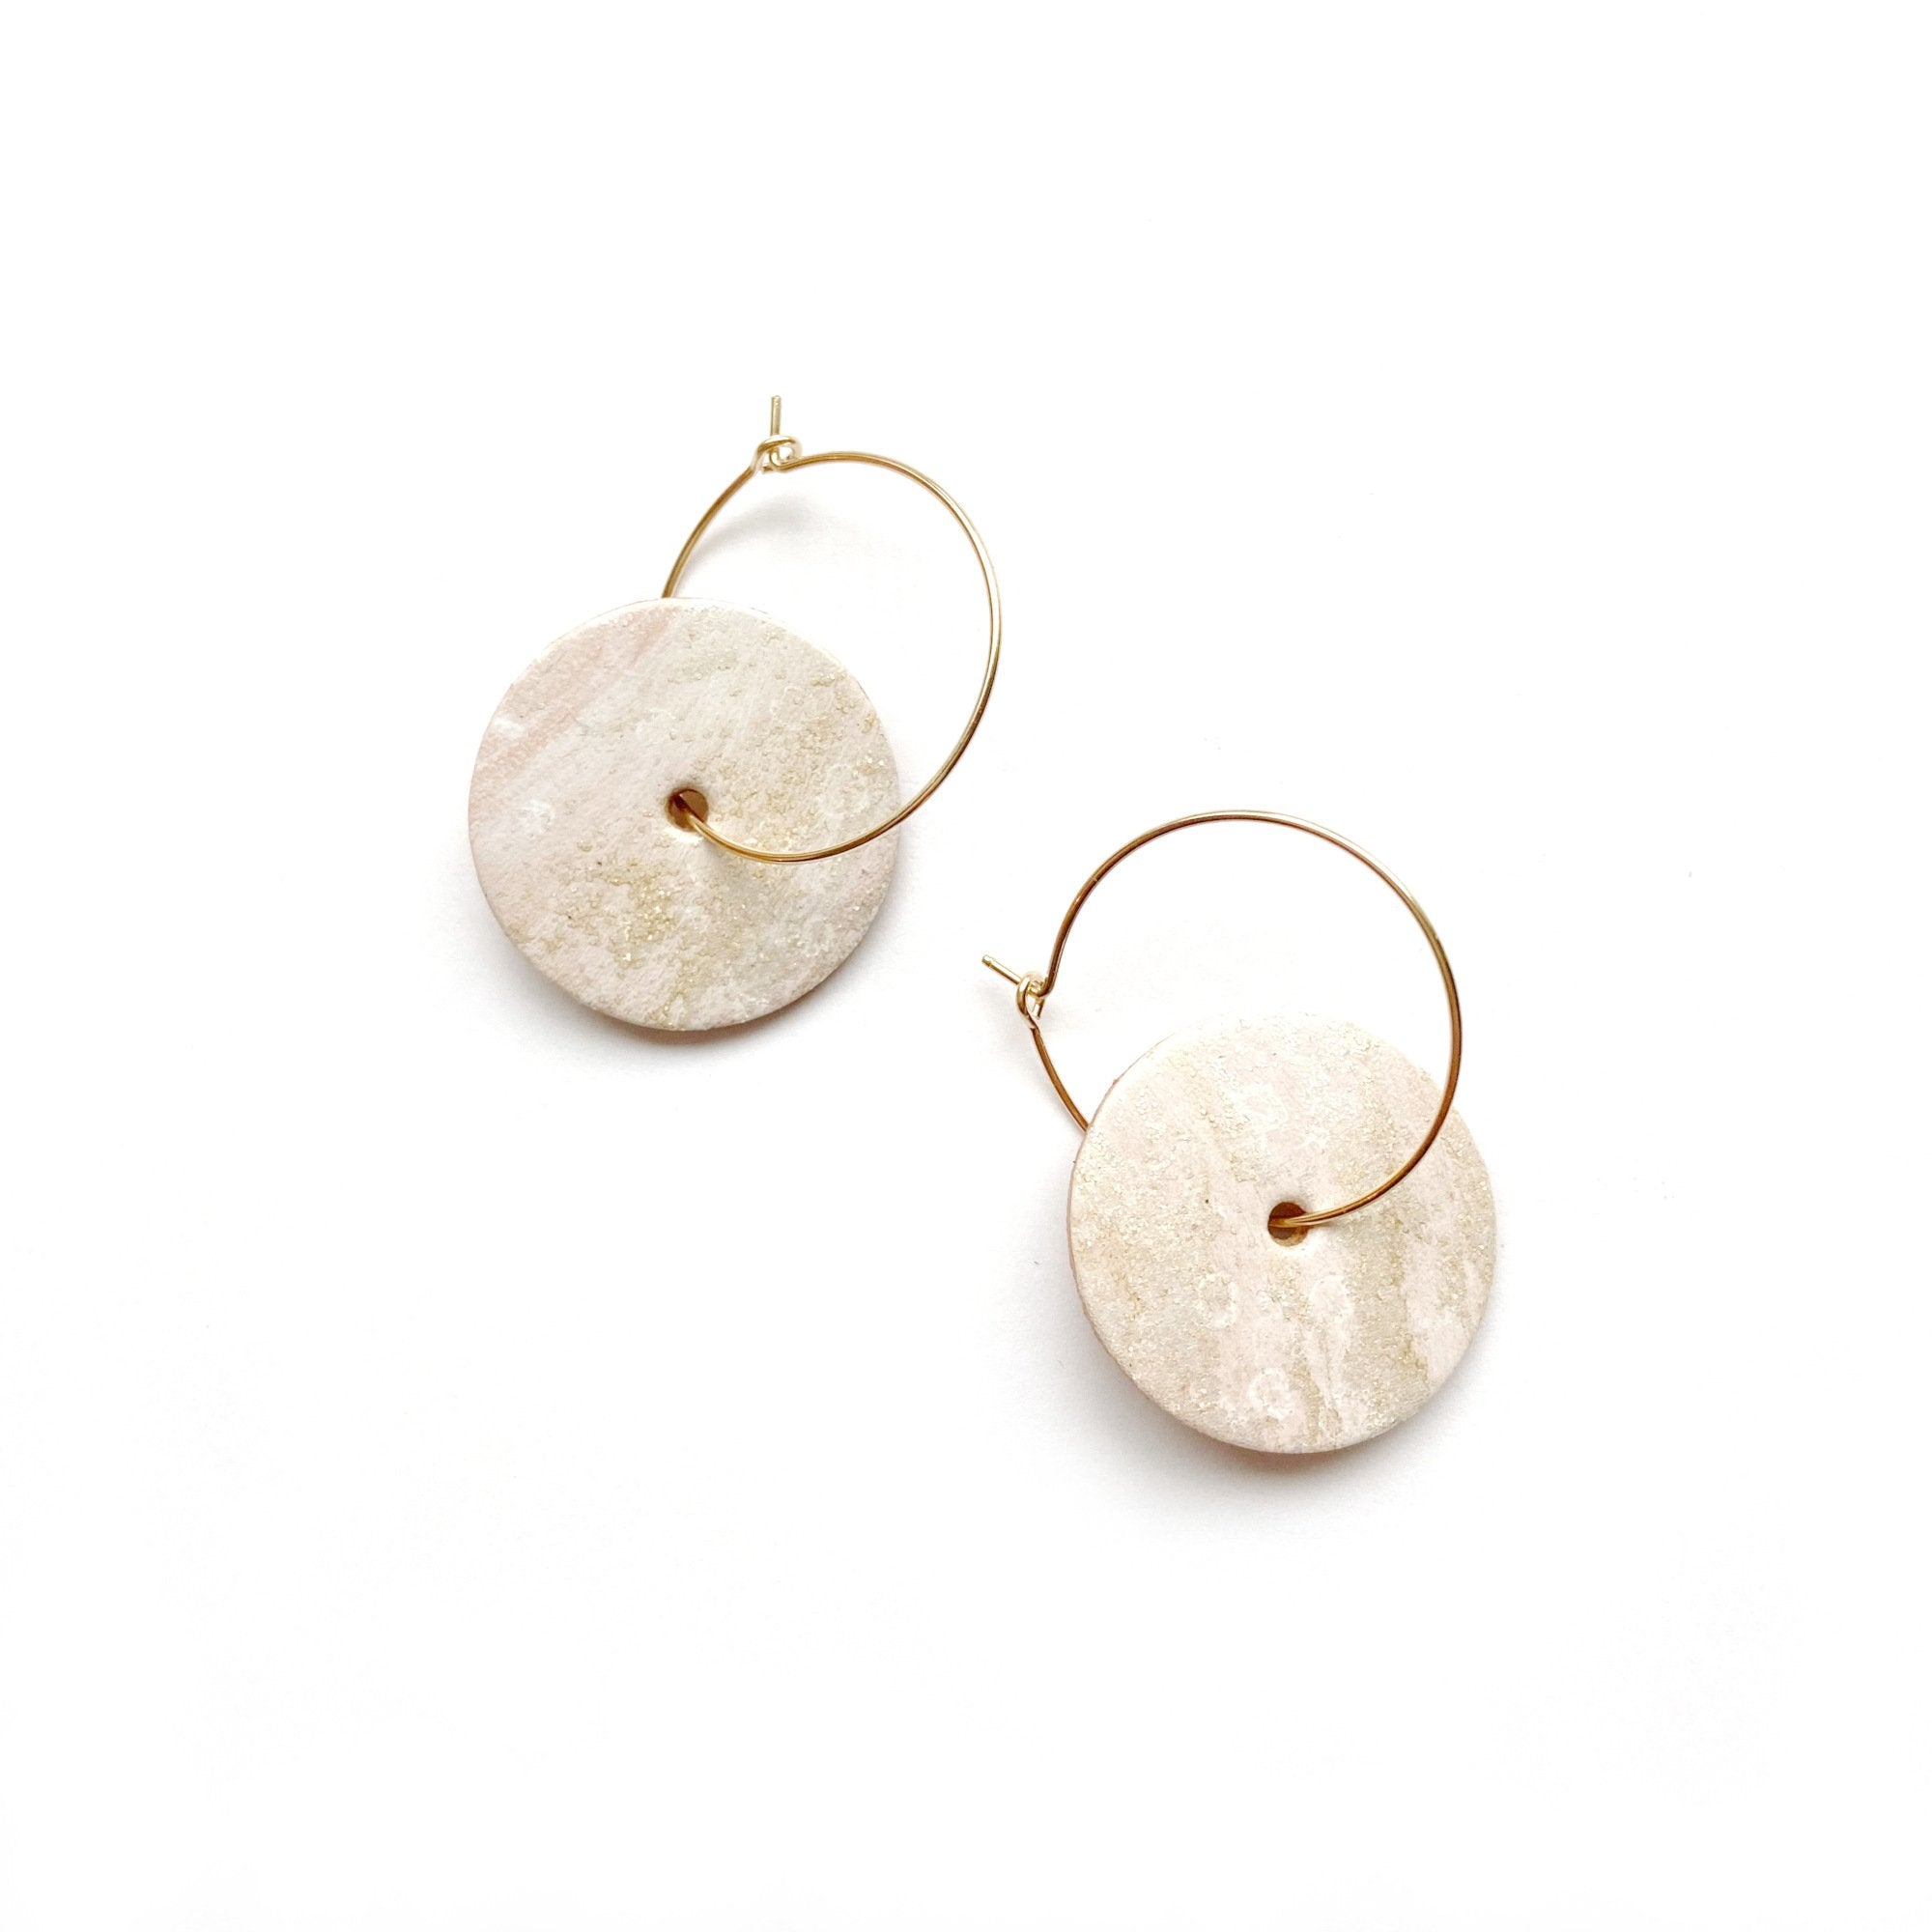 Gold hoop earrings by Two boss beads